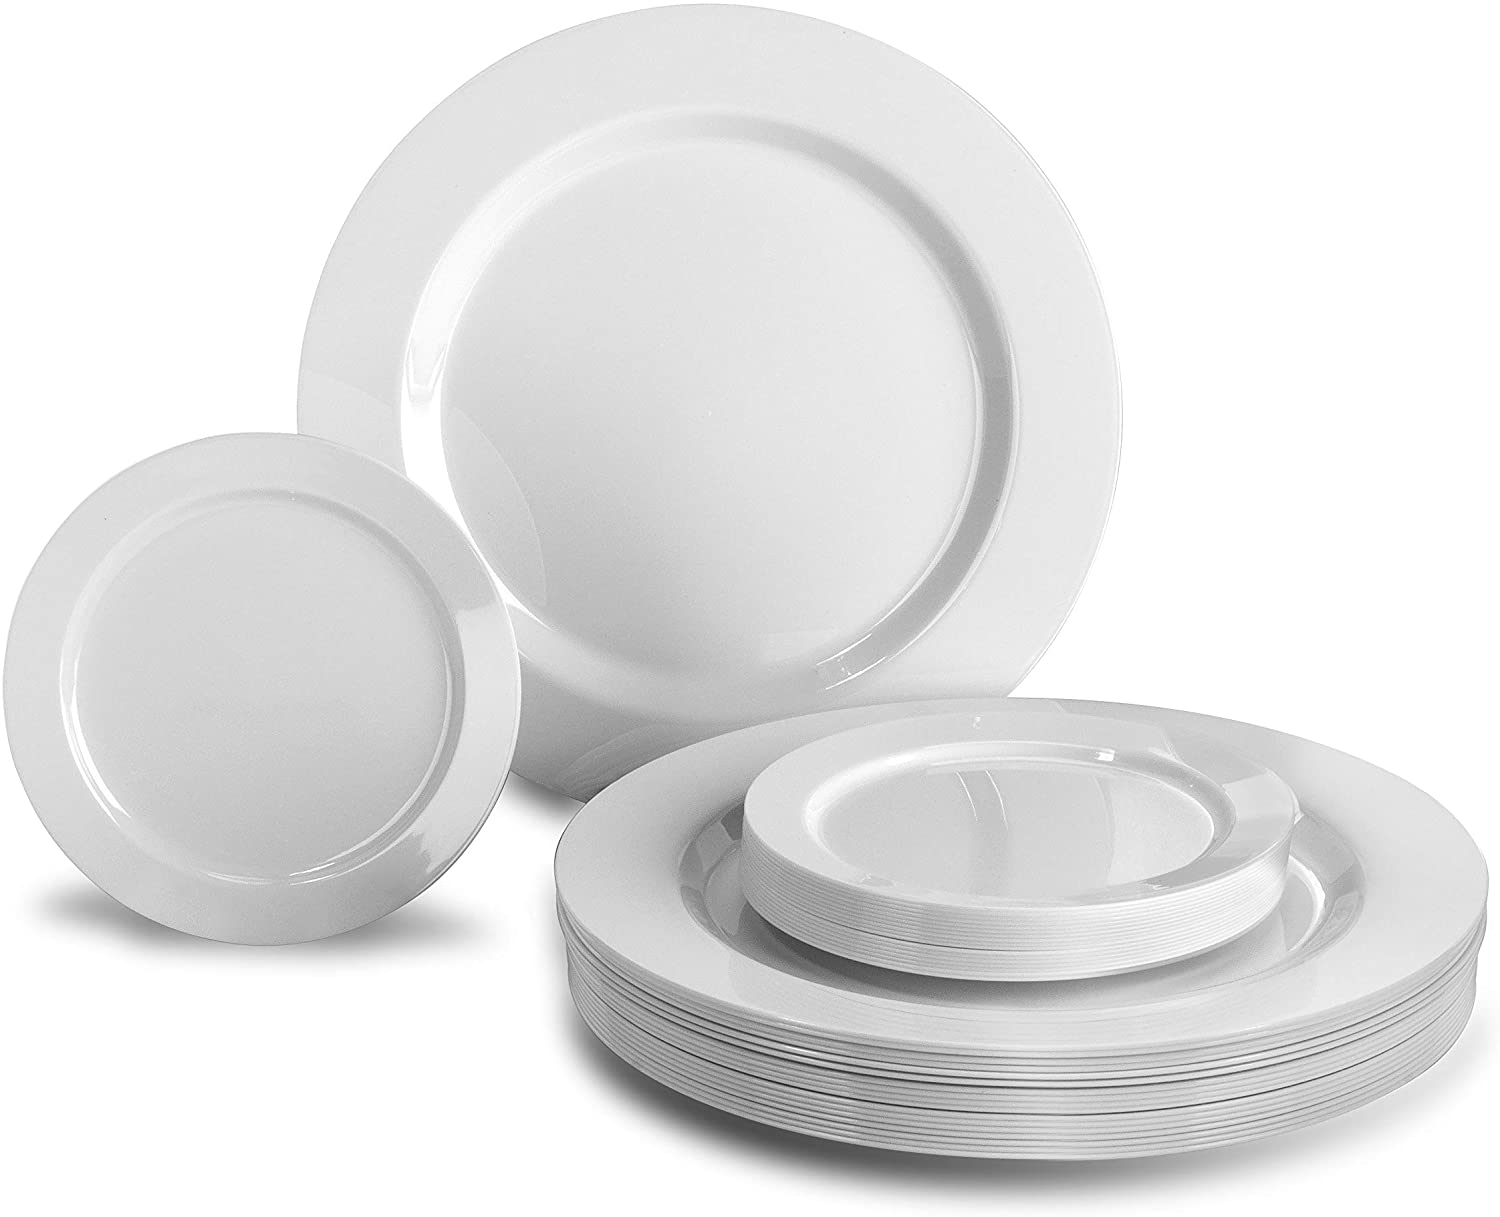 OCCASIONS  120 Plates Pack, Heavyweight Premium Disposable Plastic Plates Set 60 x 10.5 Dinner + 60 x 6.25 Dessert / Cake Plates (Plain White)